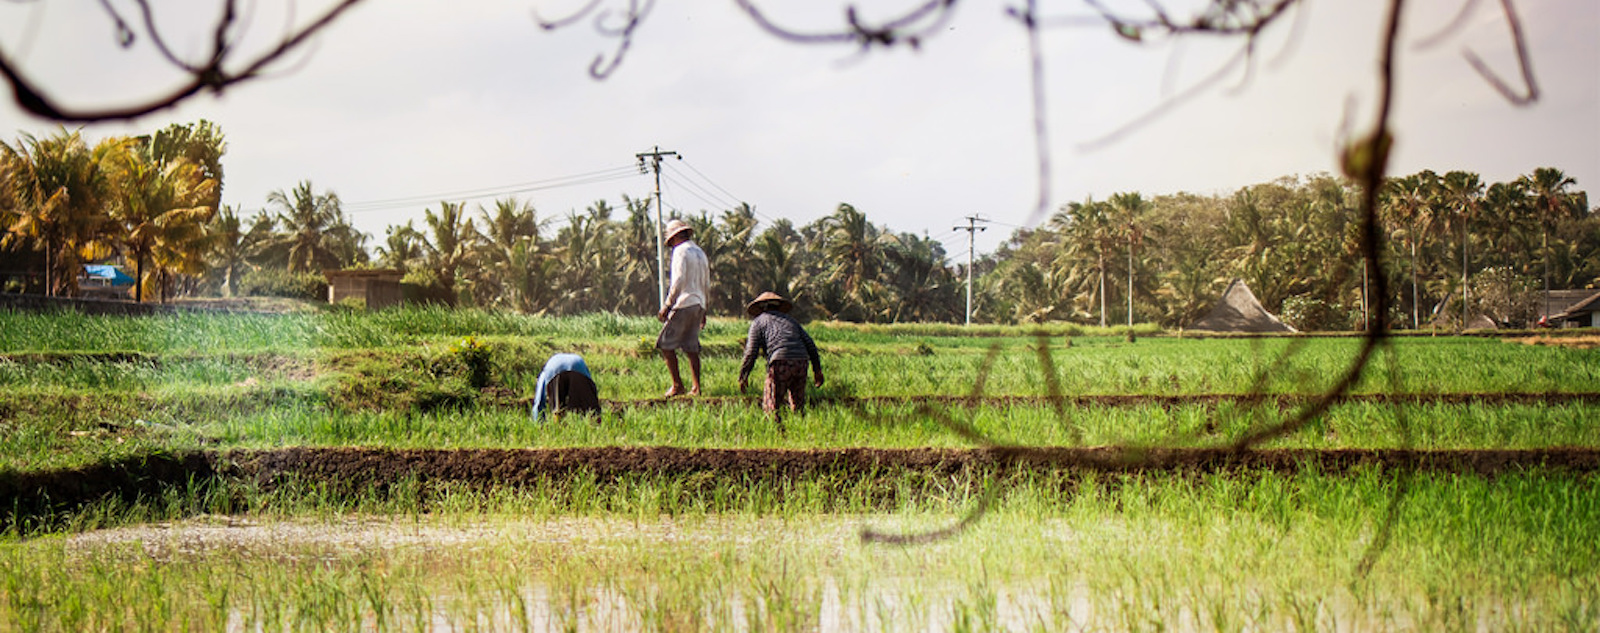 The impact of the fourth industrial revolution and oil palm plantation on rural smallholders was discussed (Photo: Artem/ Flickr)